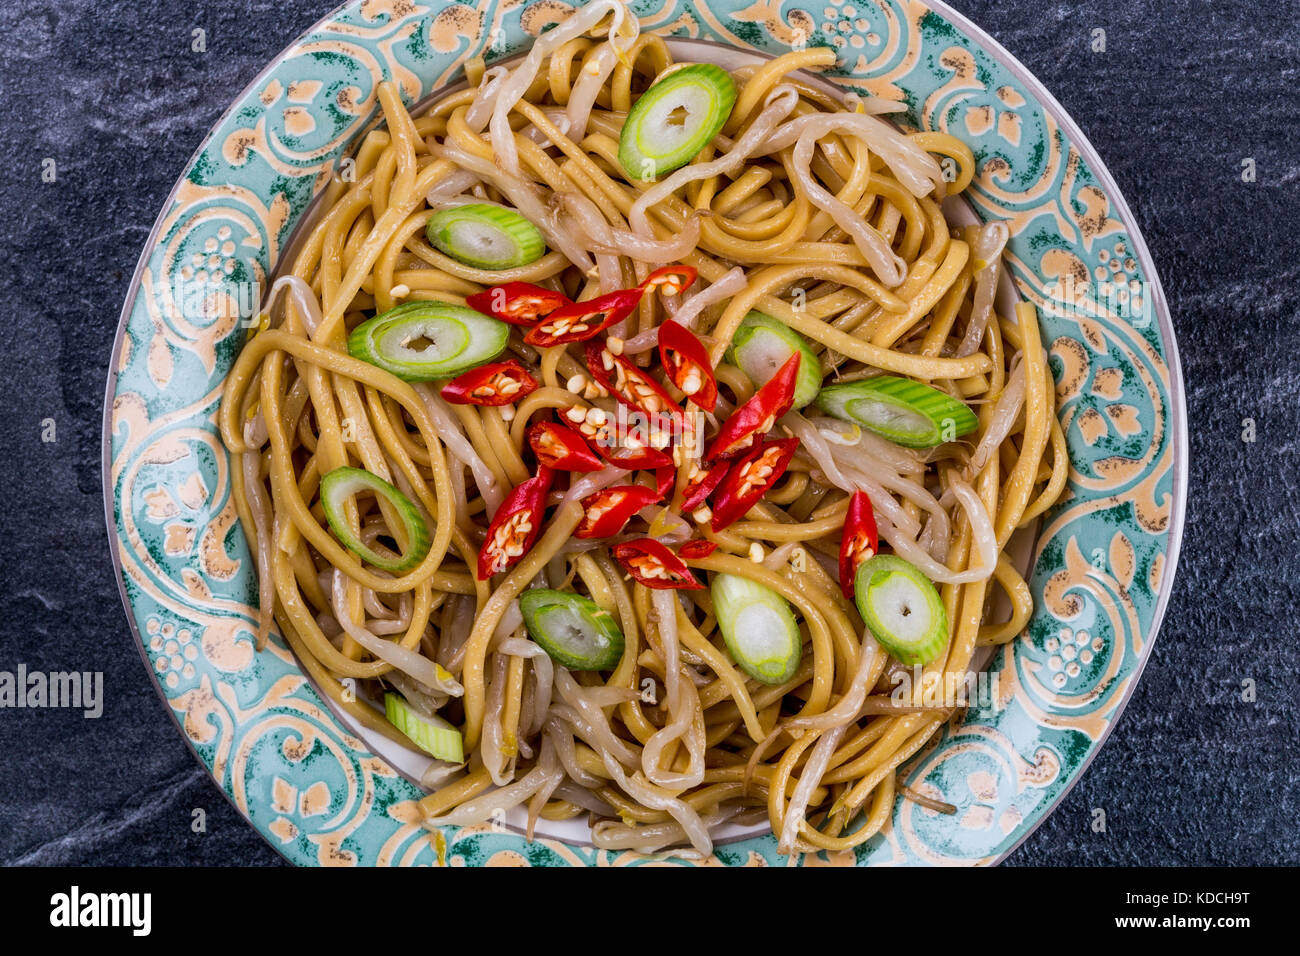 Chinese Style Wok Stir Fried Egg Noodles with Beansprouts and Red Chilli On A Black Slate Kitchen Tile - Stock Image